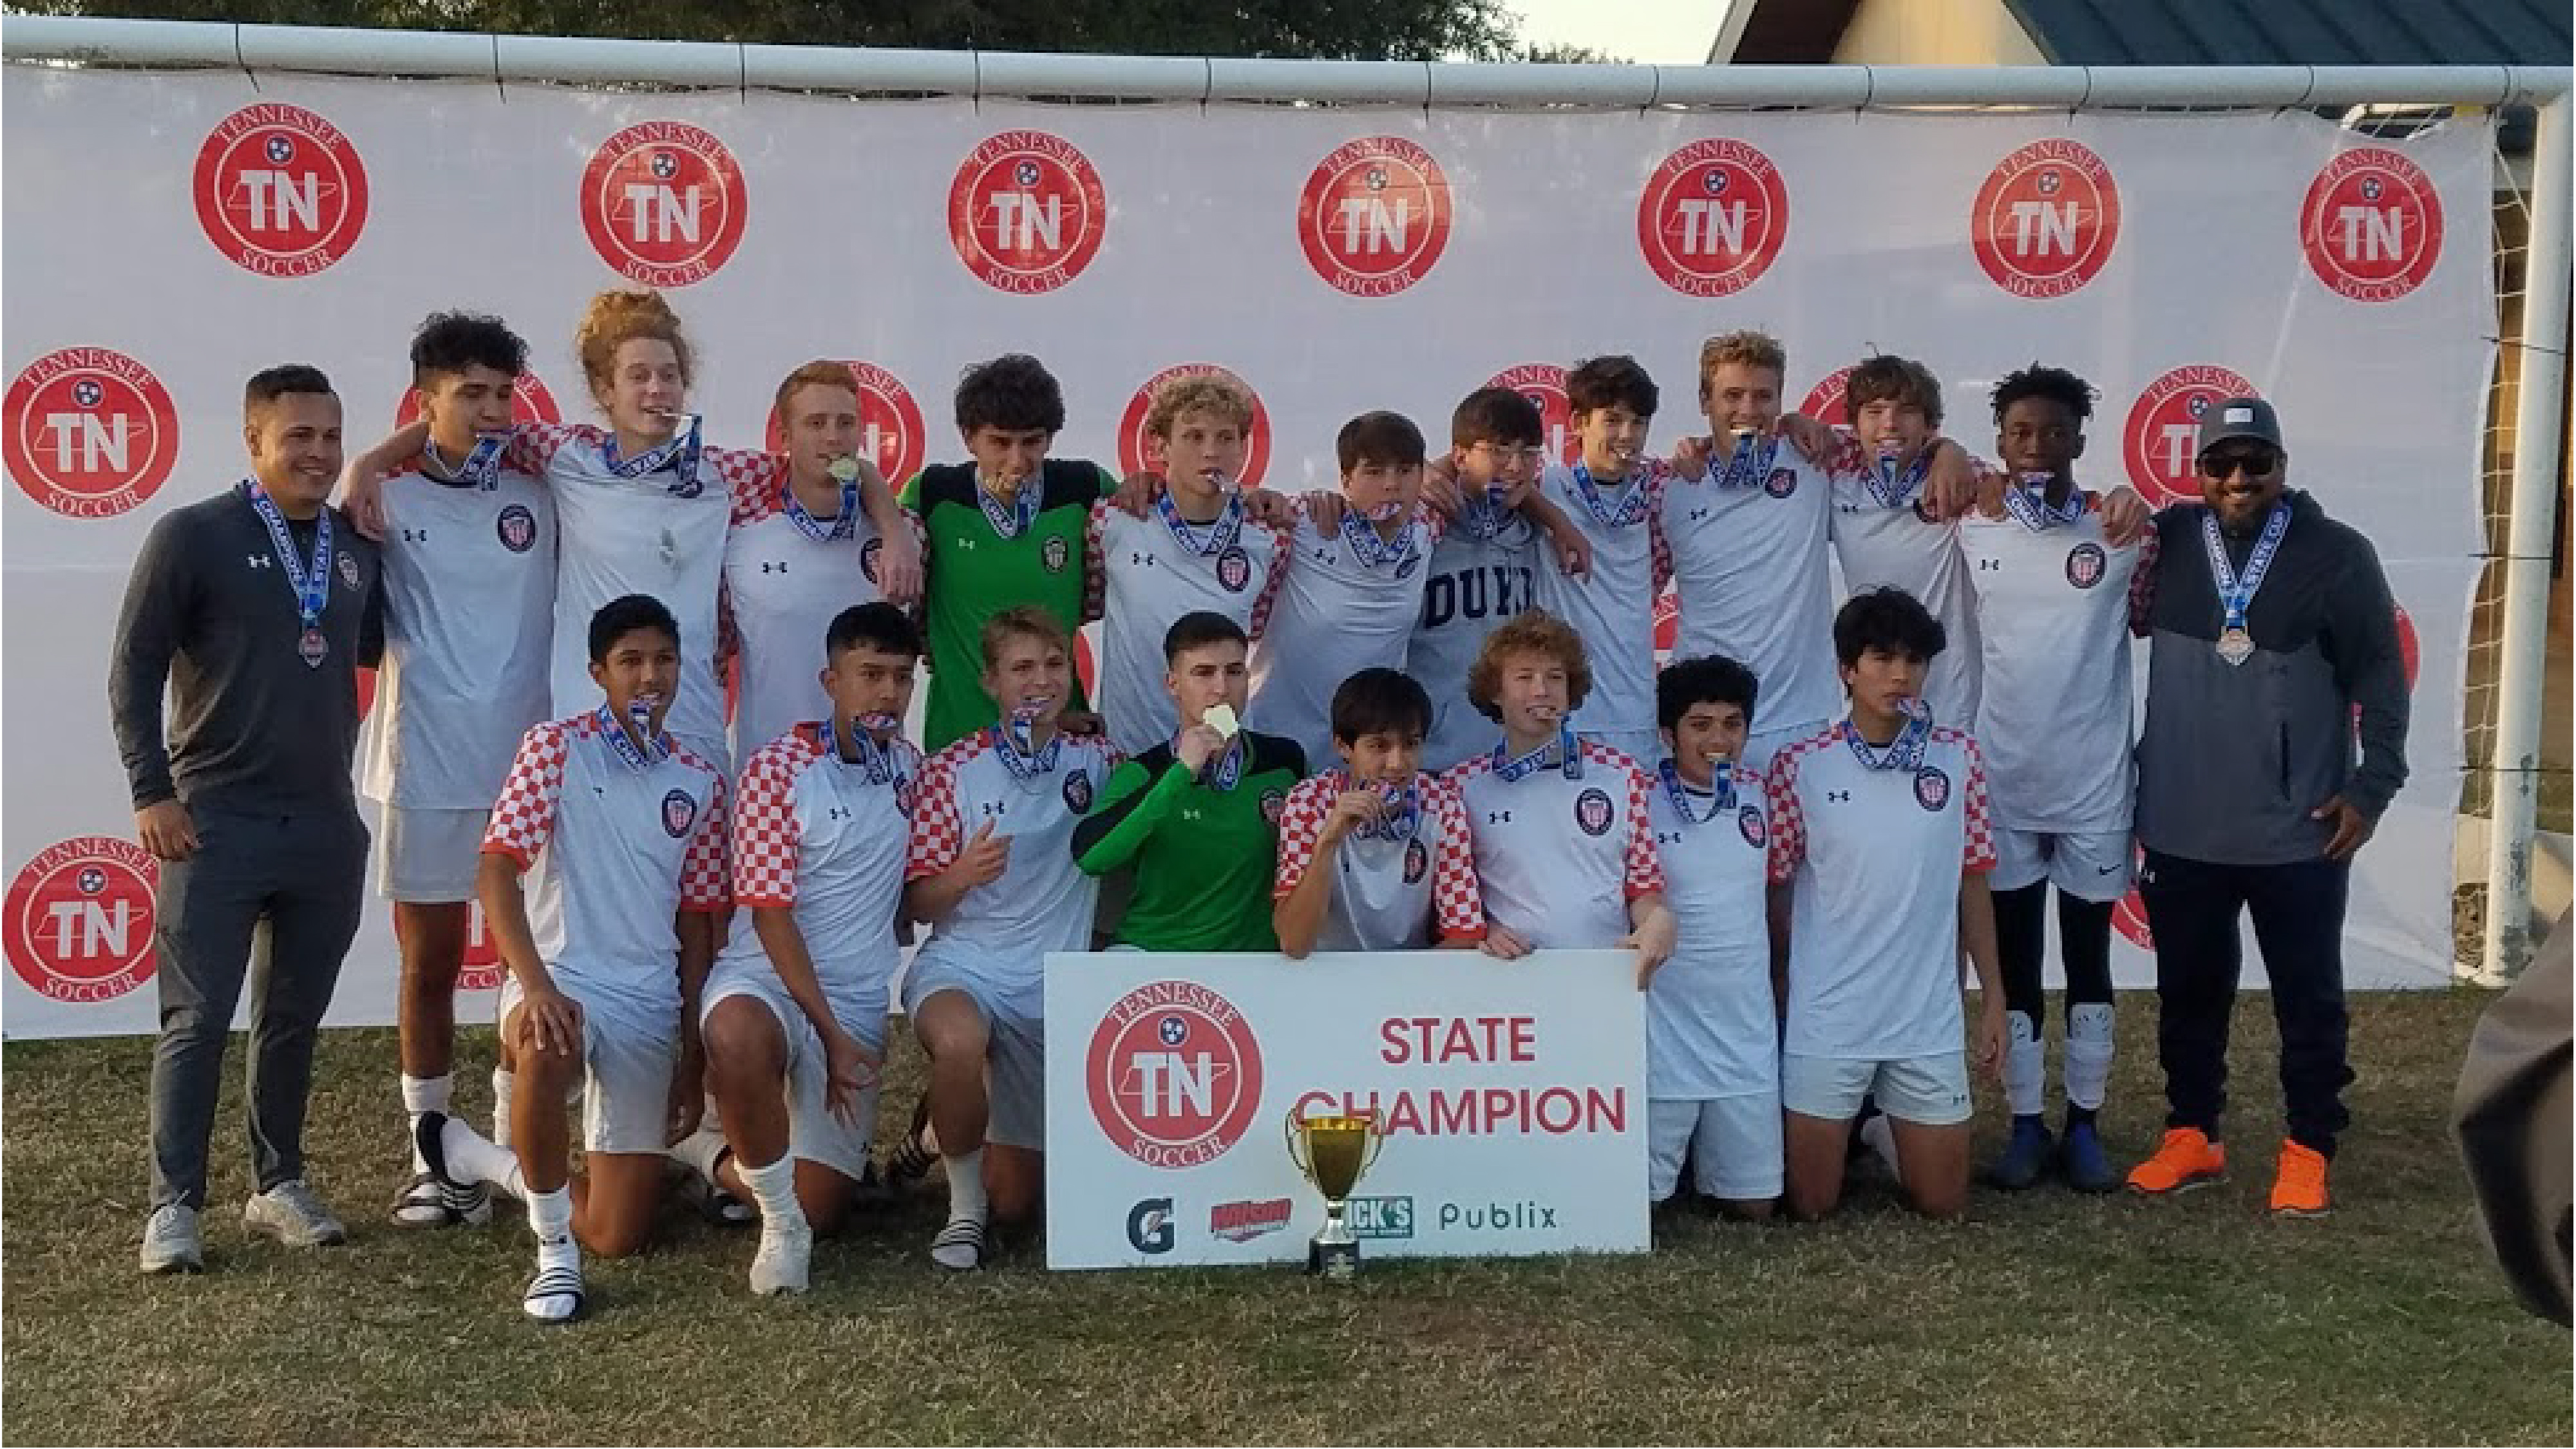 01/02 Premier Boys crowned state champions